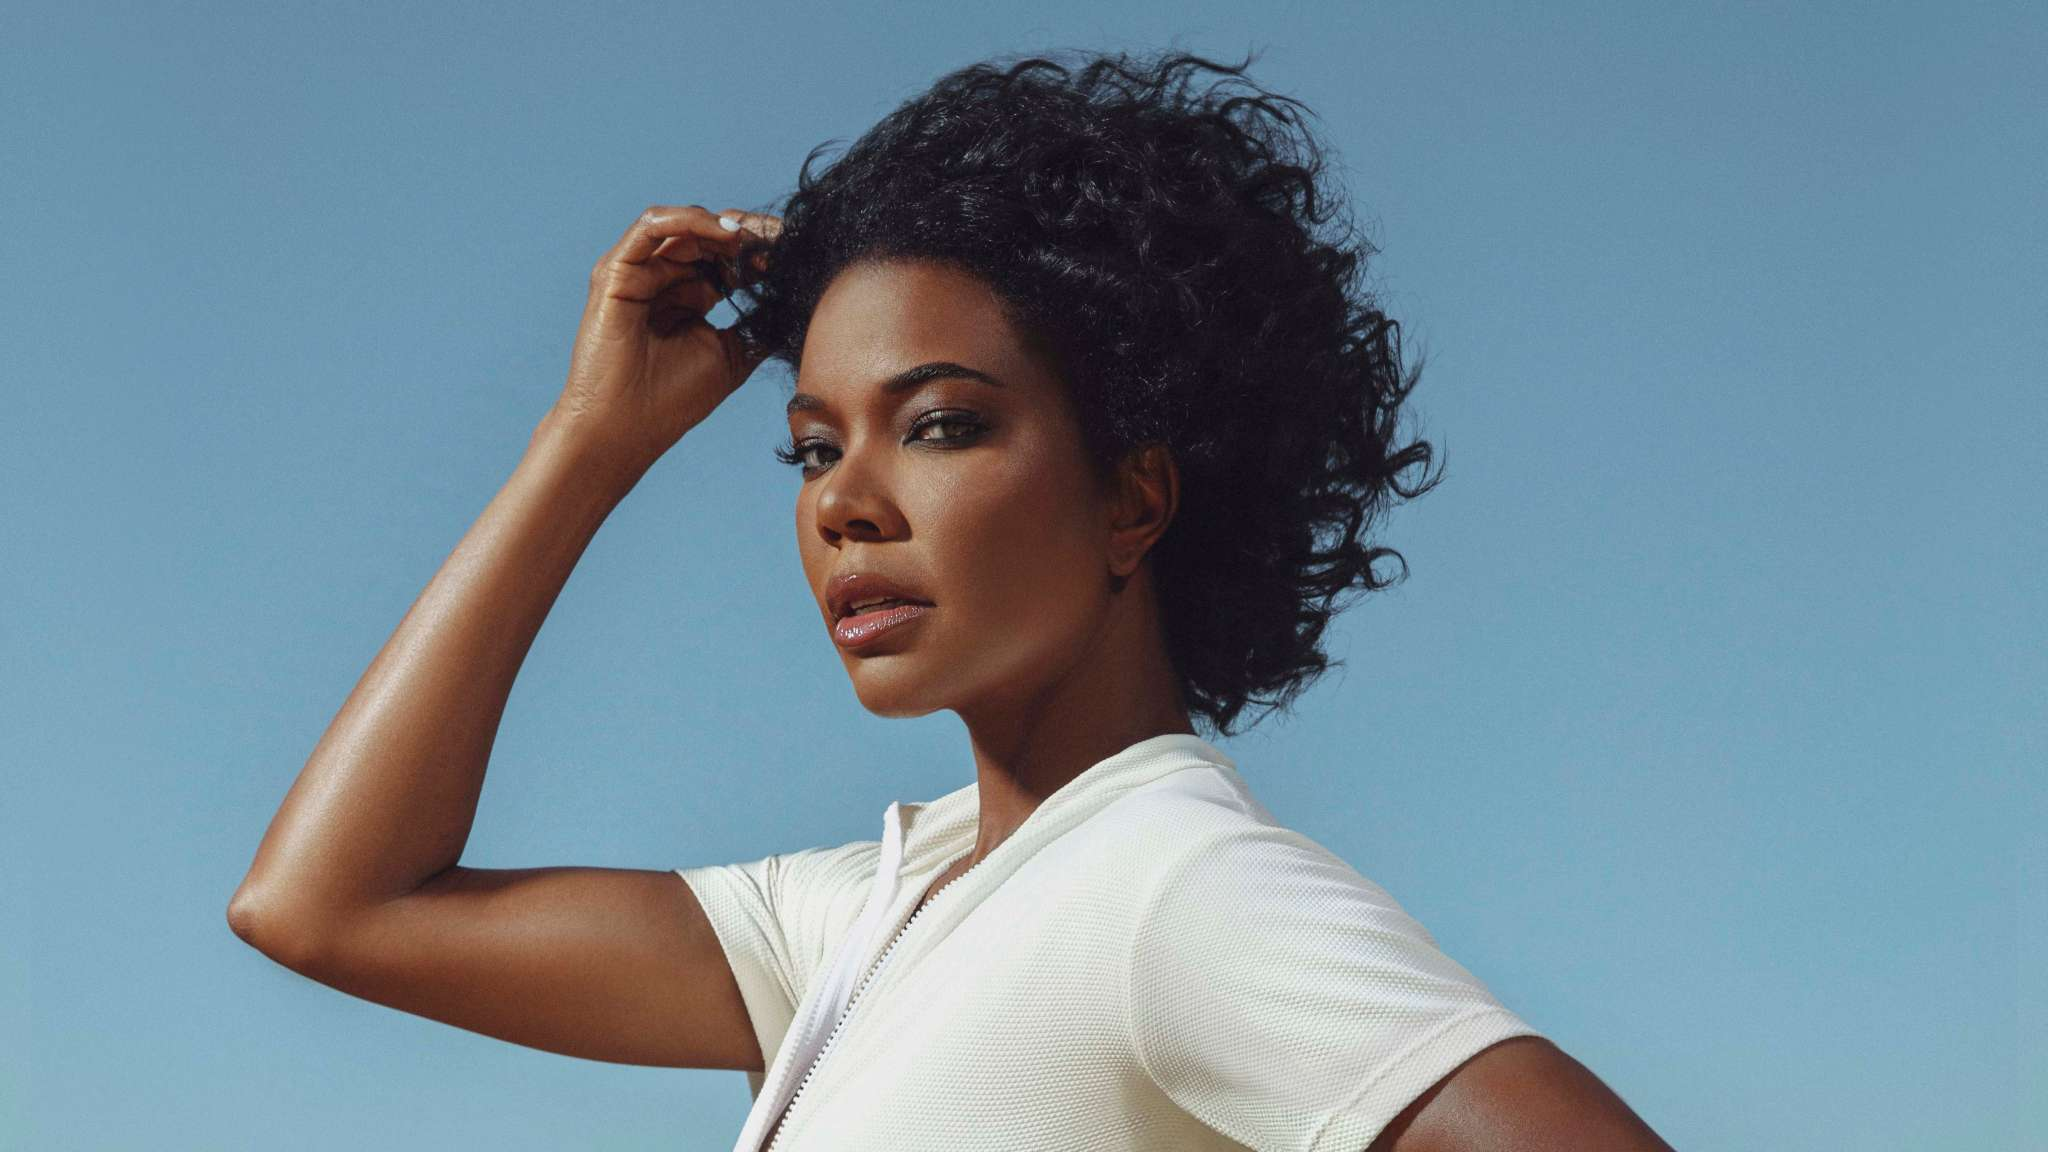 gabrielle-union-is-praising-gina-torres-see-her-message